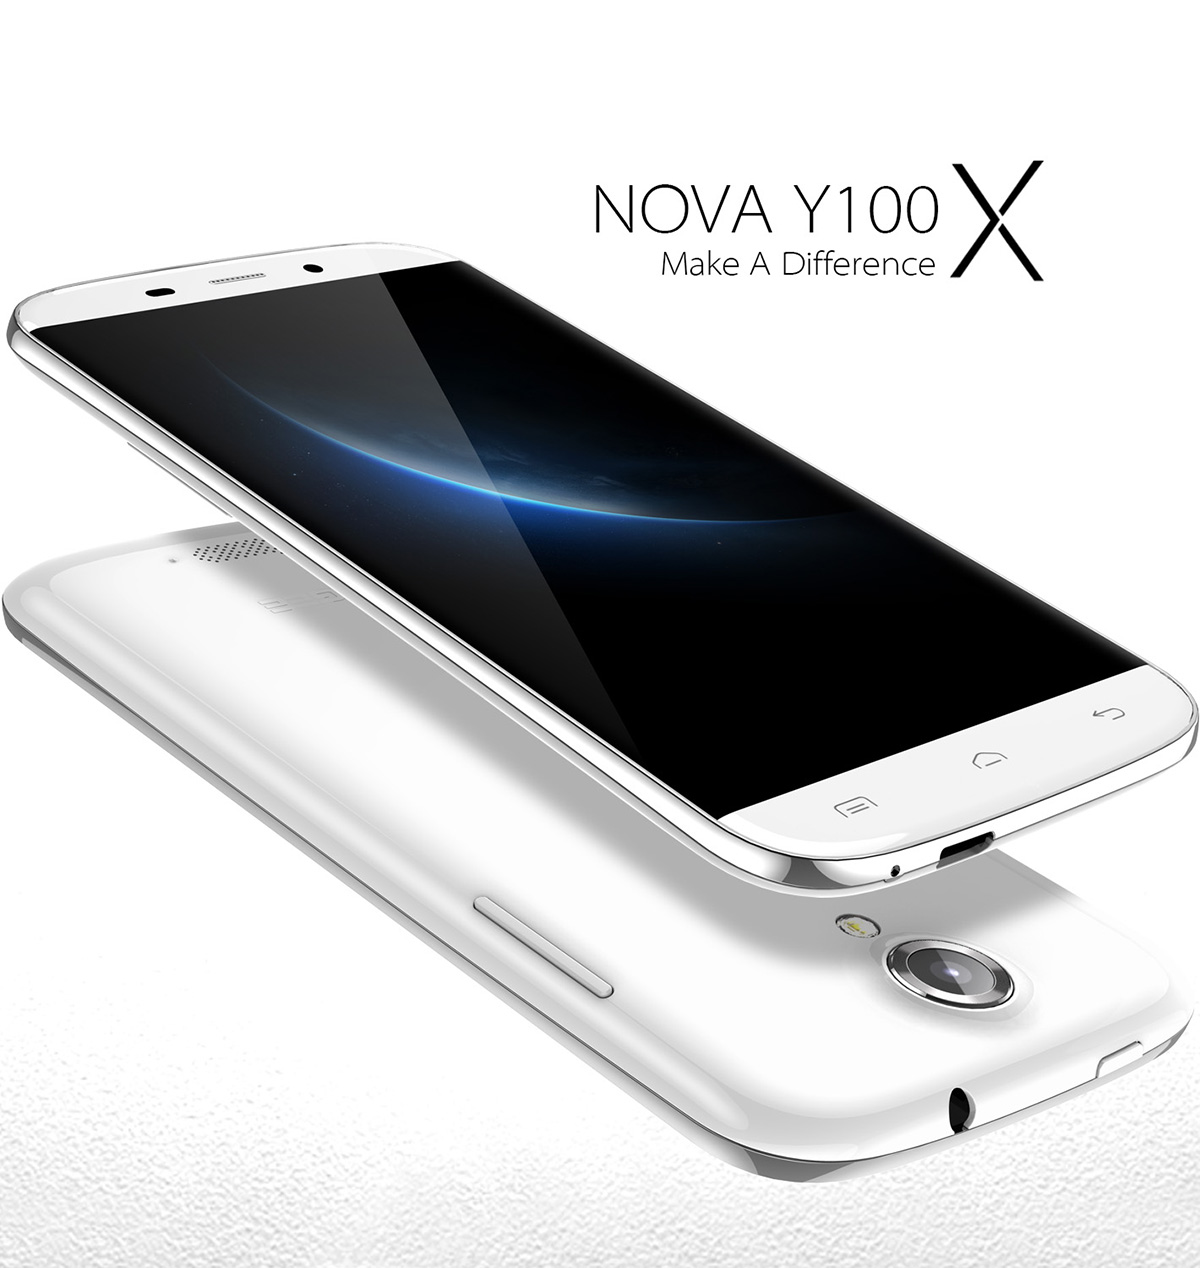 Doogee Nova Y100X design and features